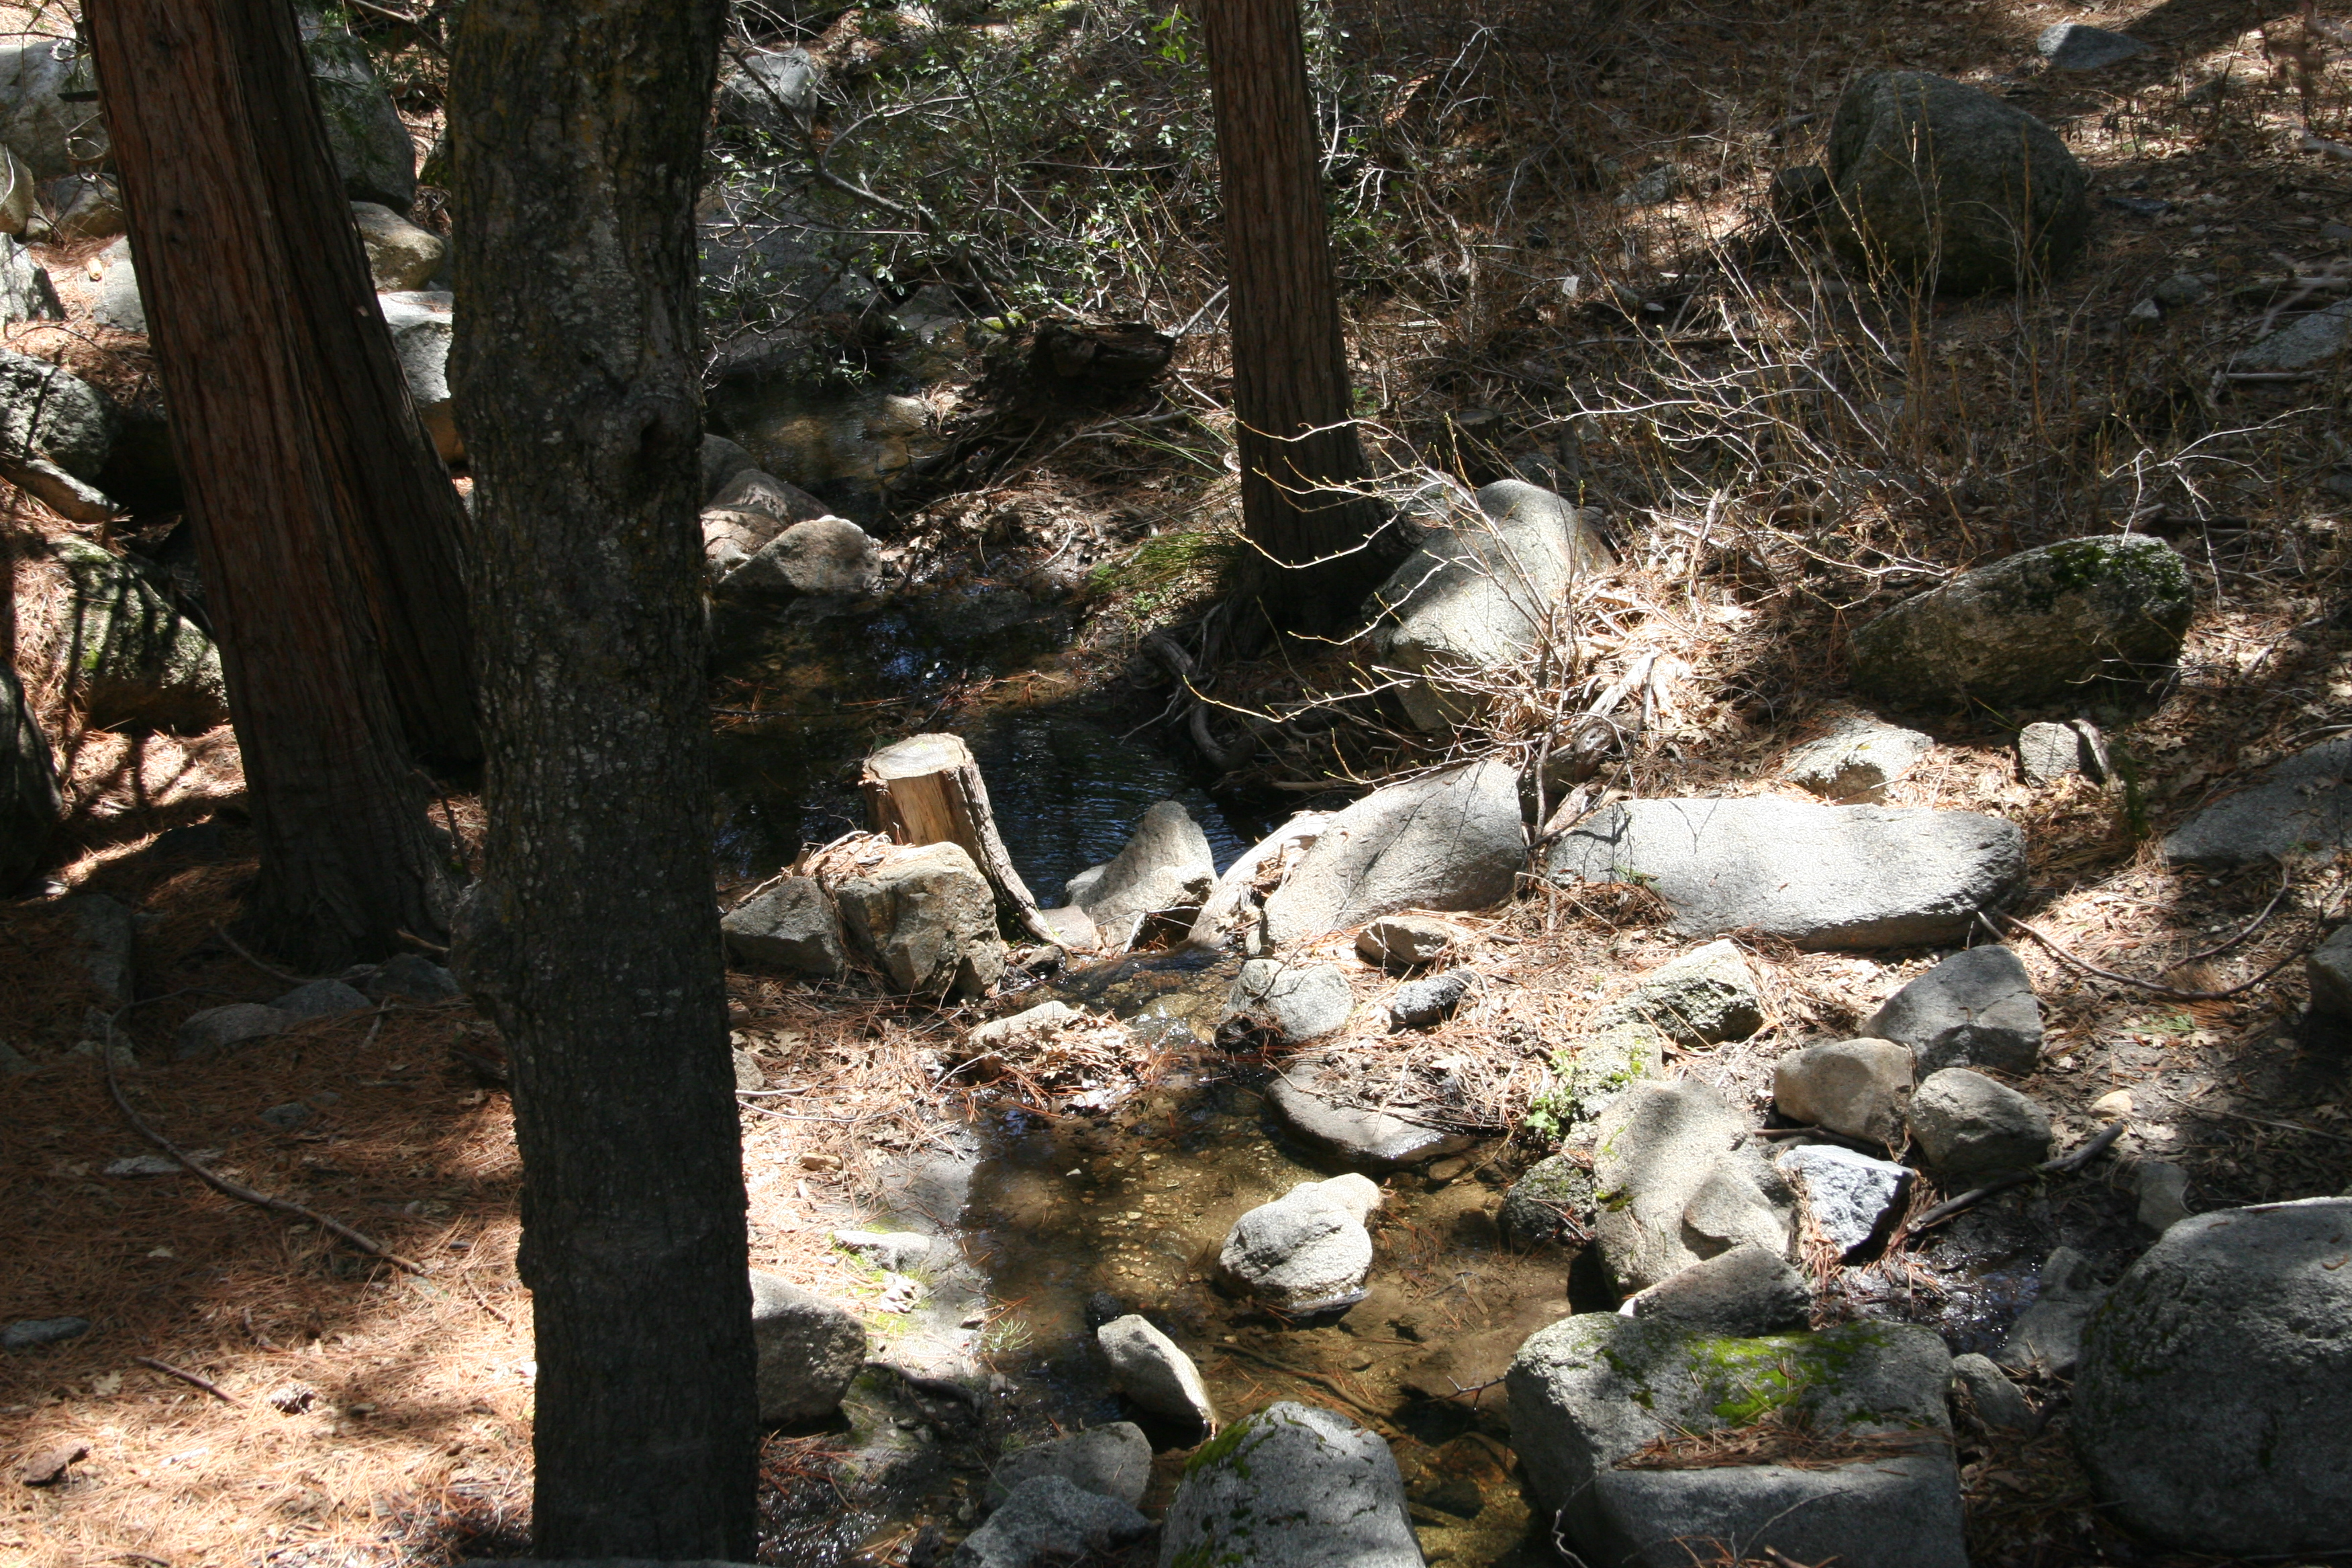 Nature scene at Idyllwild